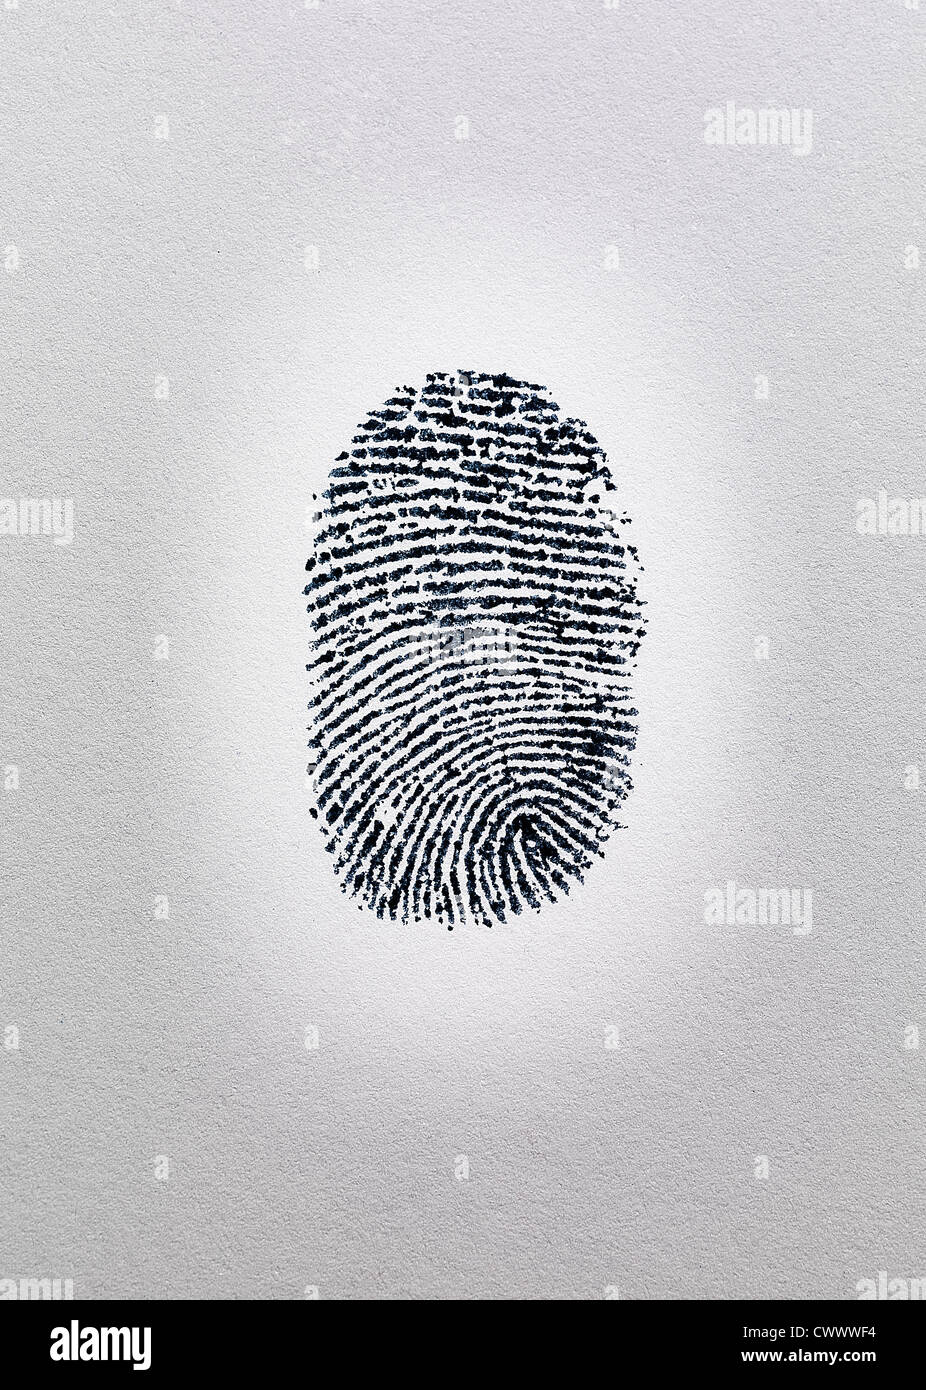 Close up of fingerprint on paper - Stock Image